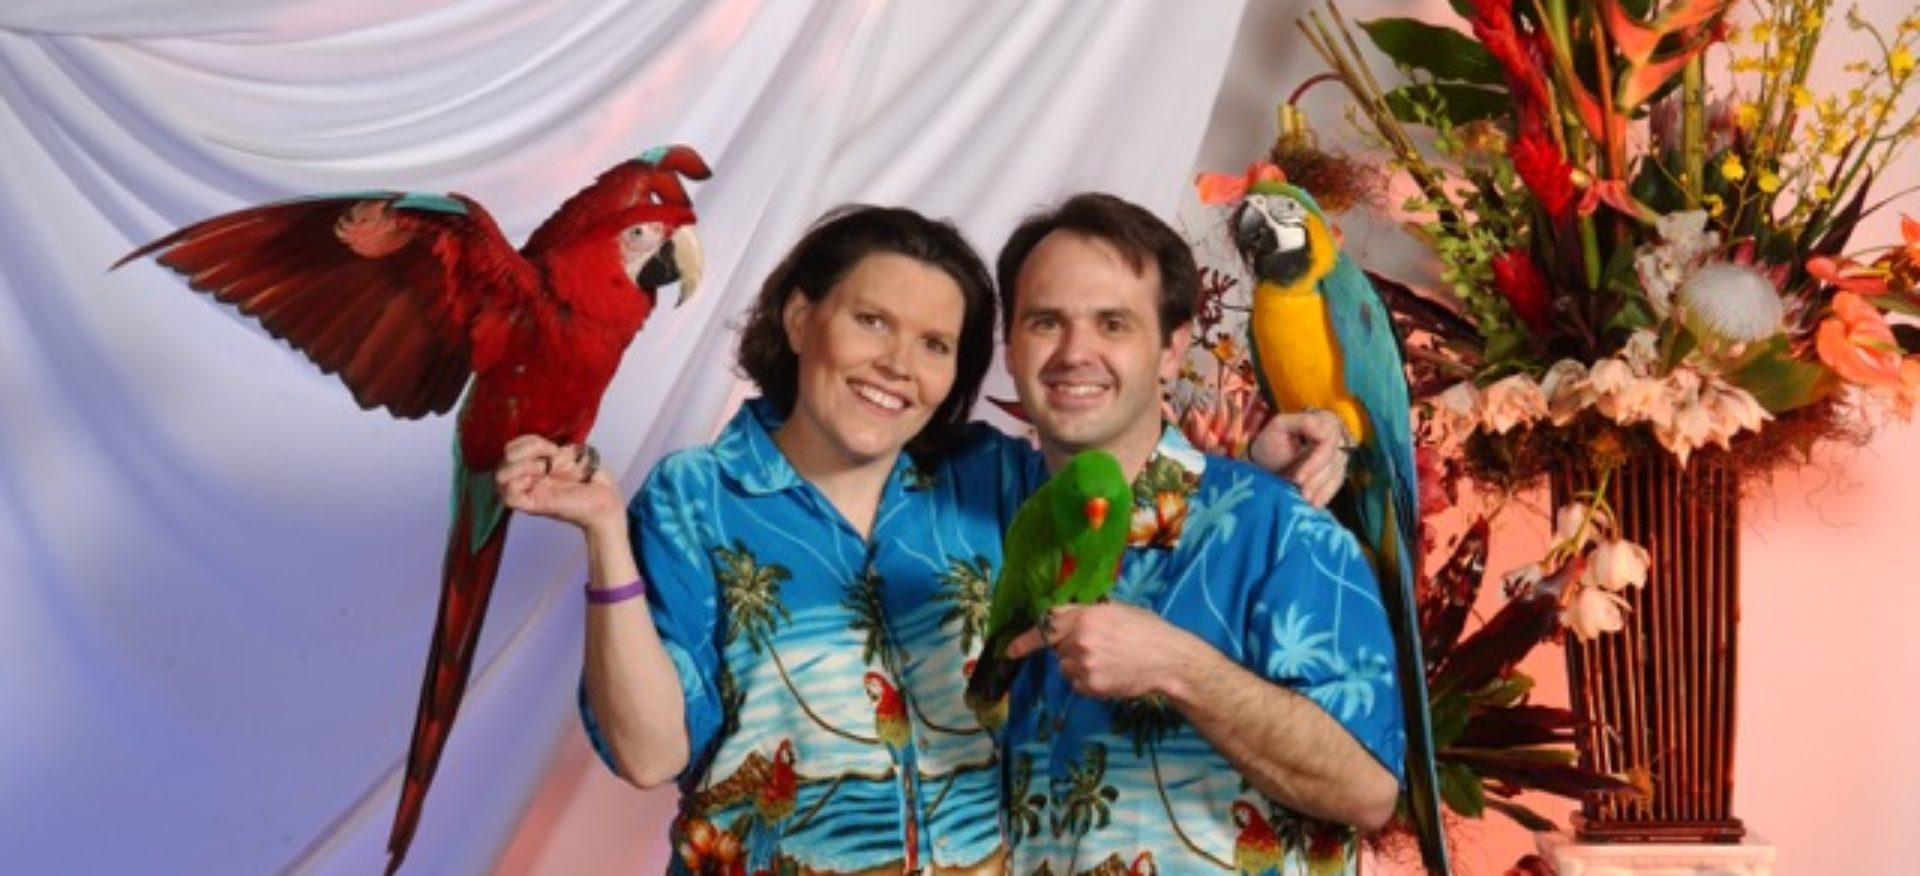 Parrot Ambassadors Educational Entertainment